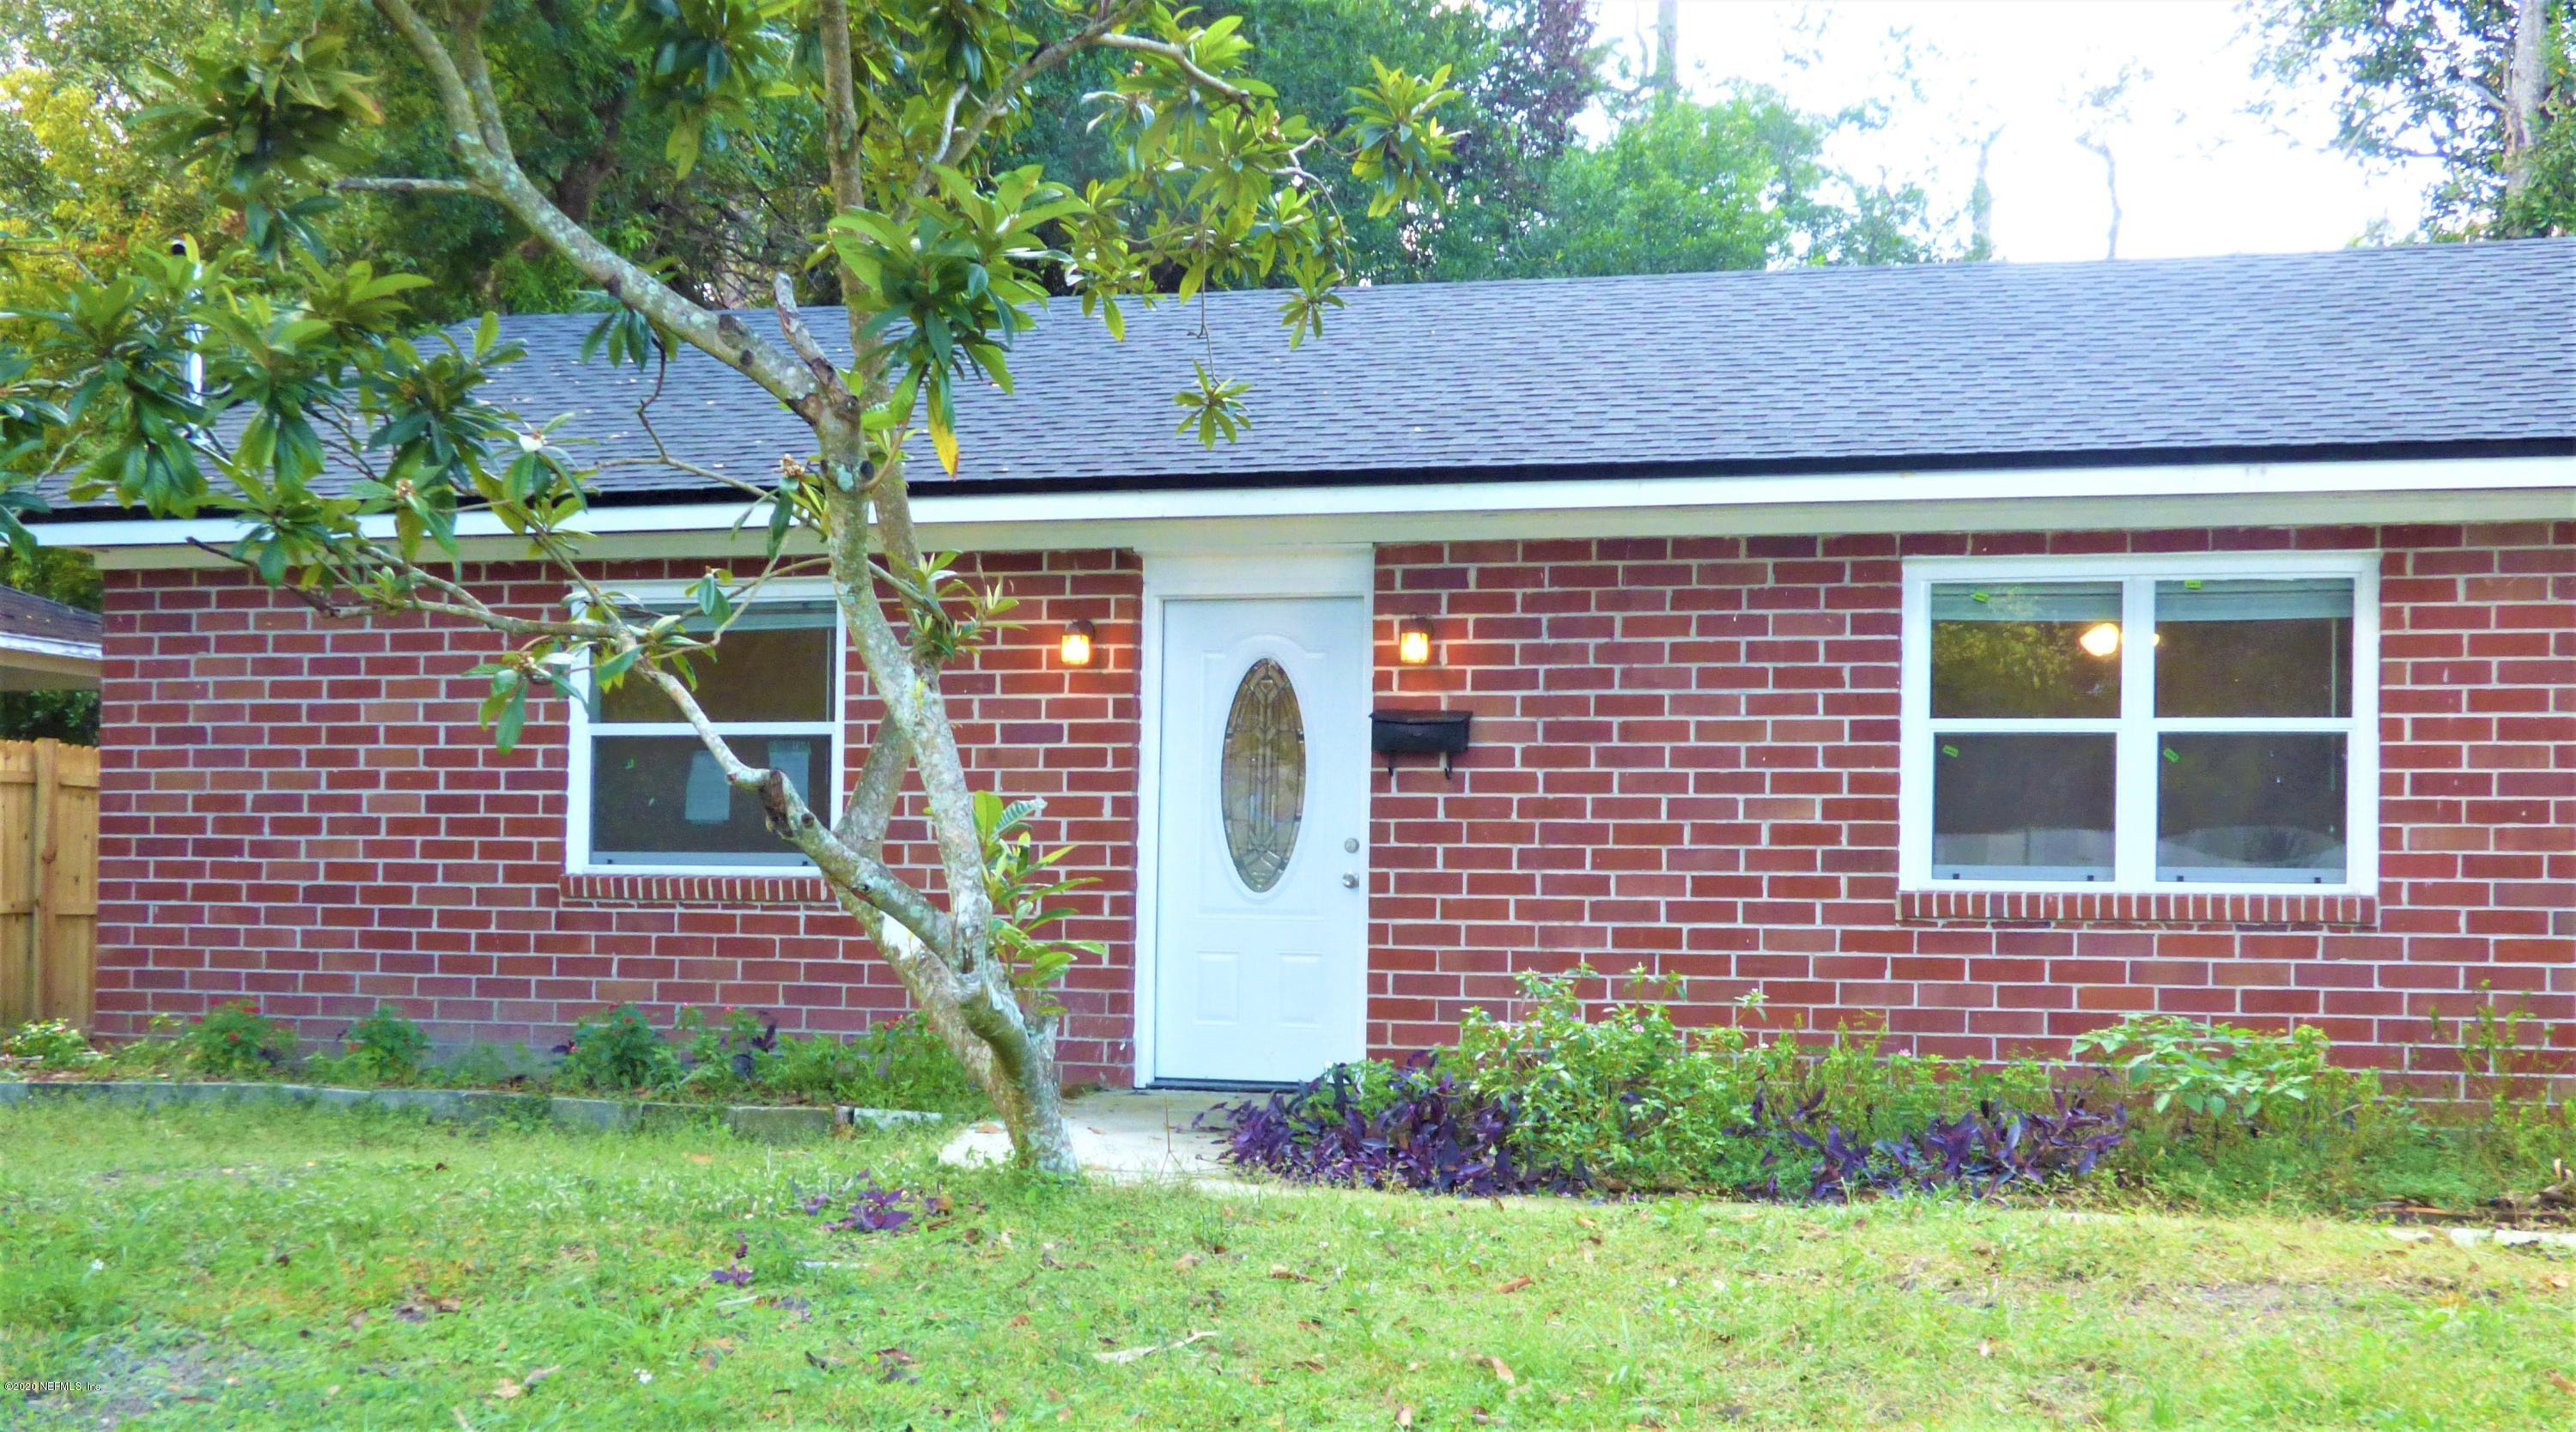 2314 HOLMES, JACKSONVILLE, FLORIDA 32207, 3 Bedrooms Bedrooms, ,2 BathroomsBathrooms,Residential,For sale,HOLMES,1079760